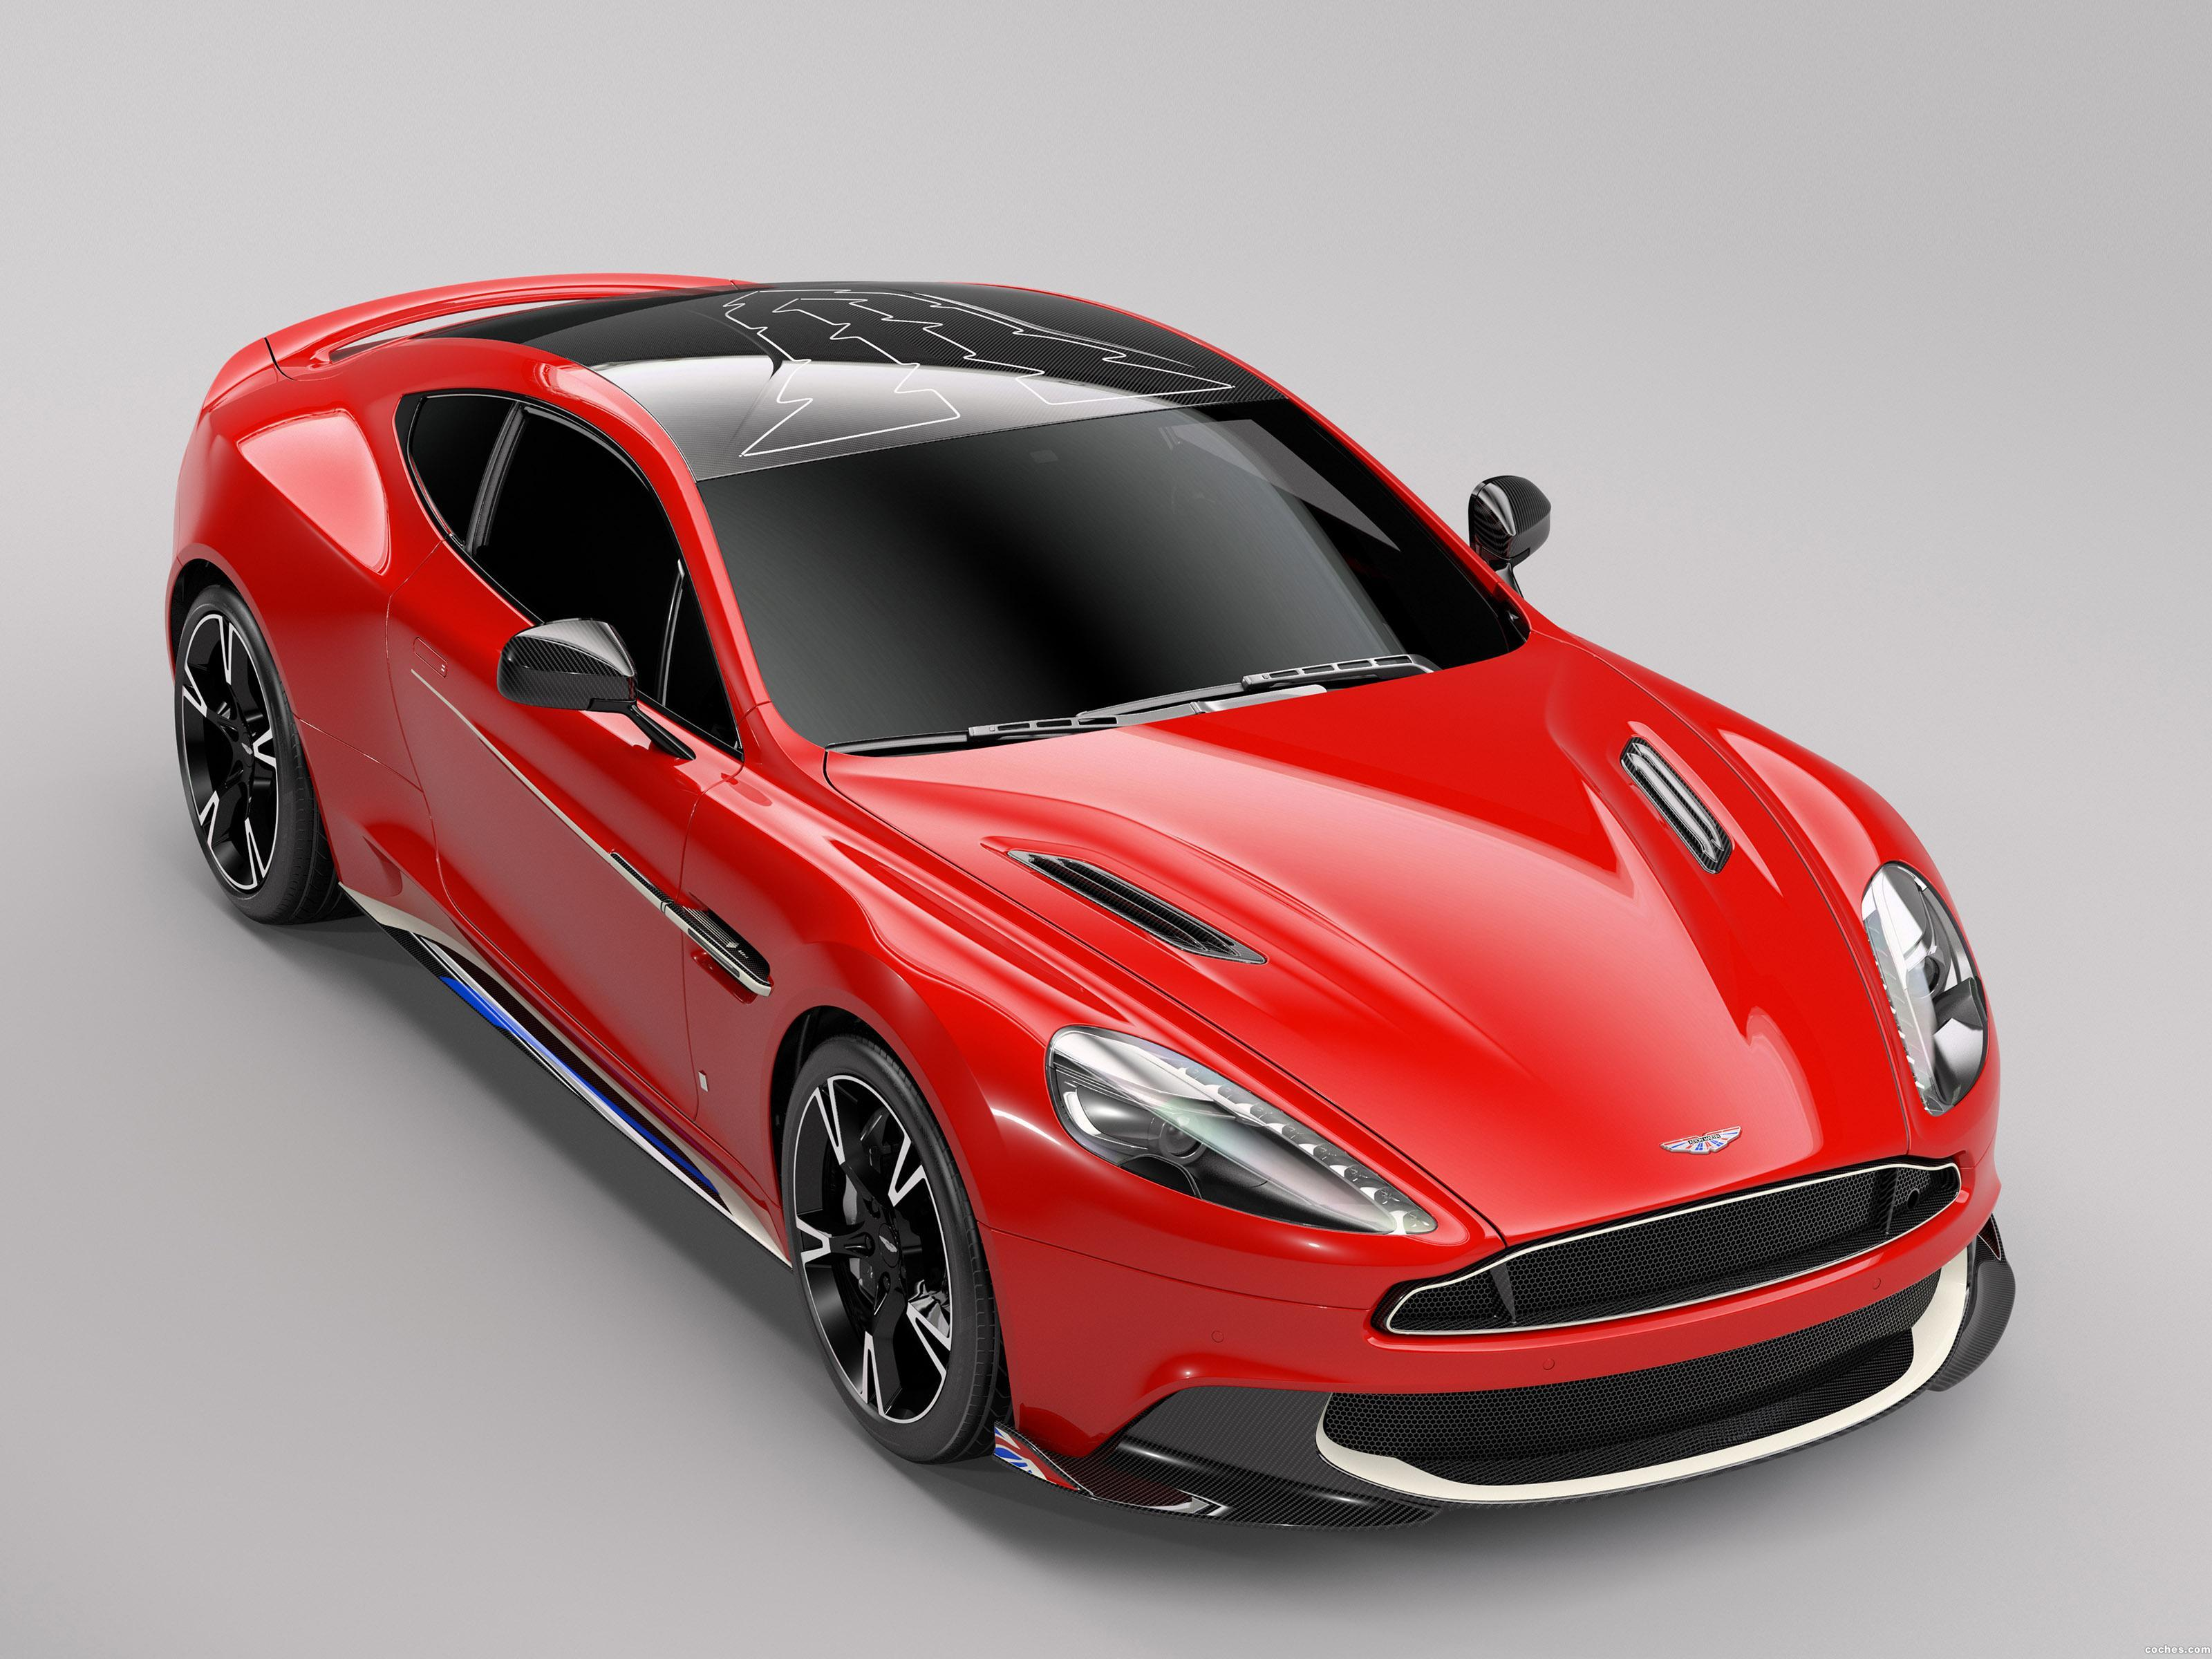 astonmartin_q-by-aston-martin-vanquish-s-red-arrows-edition-2017_r4.jpg